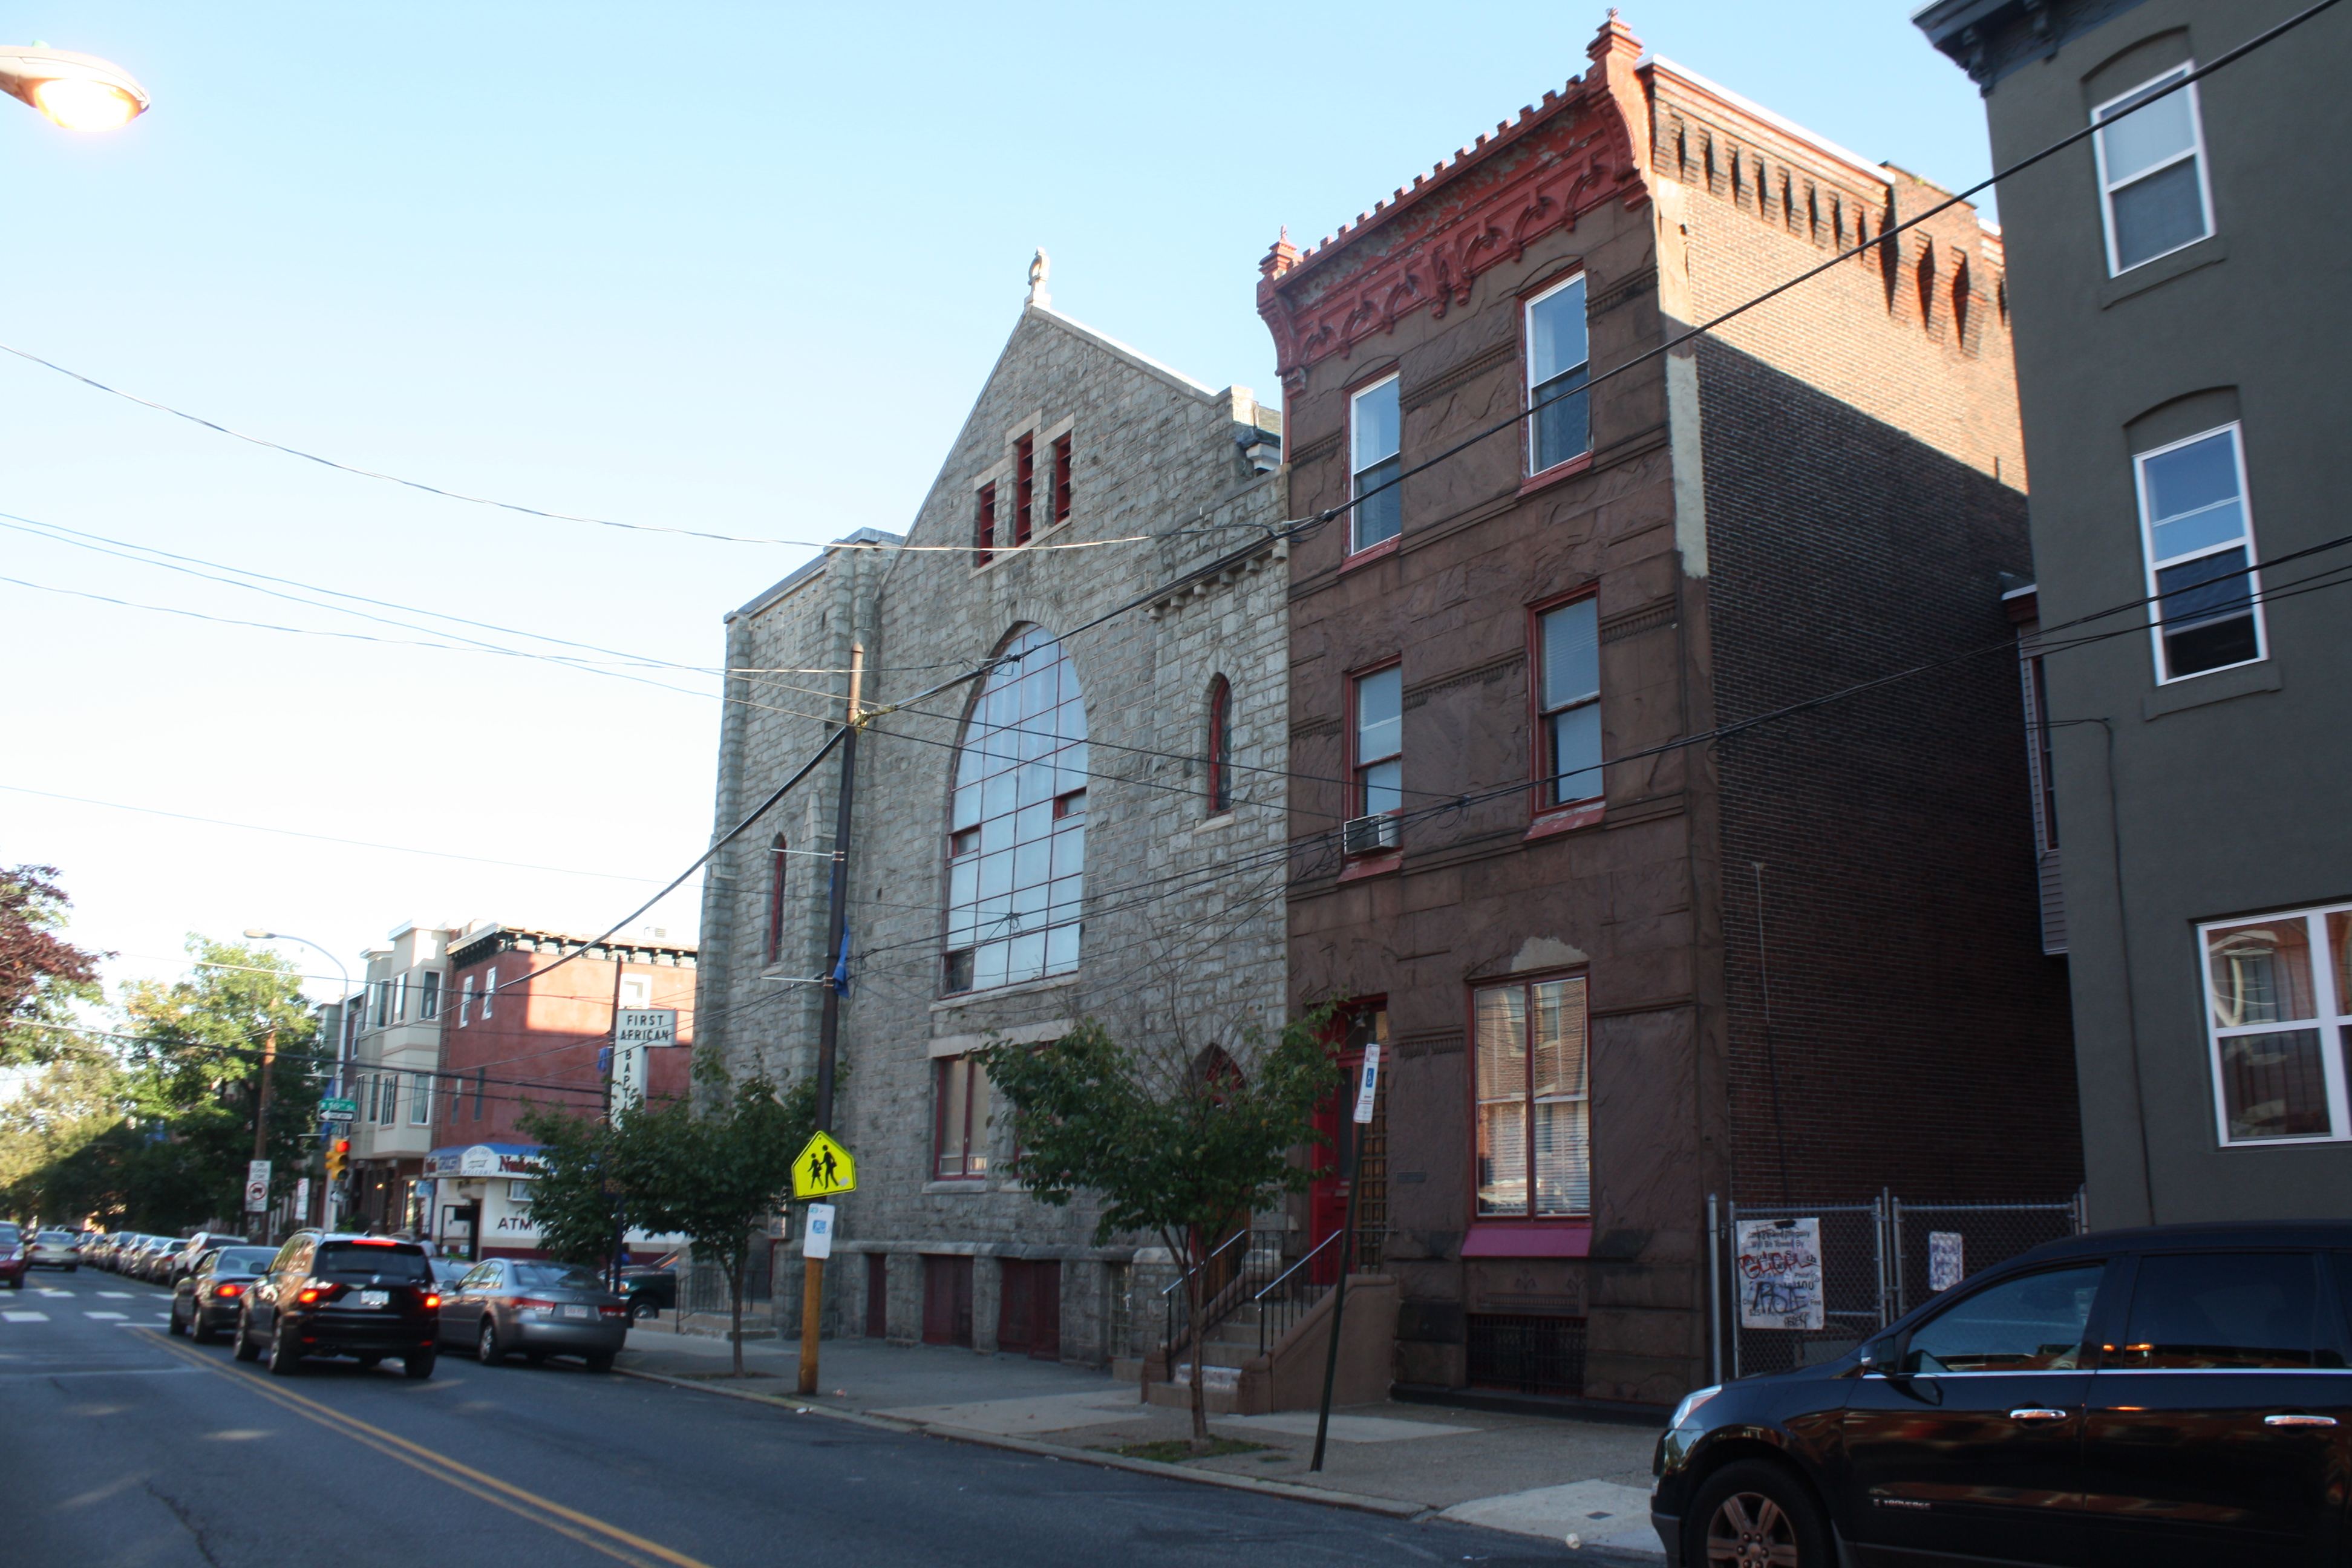 The First African Baptist Church was designated by the city as historic in 2015 (Jared Brey)